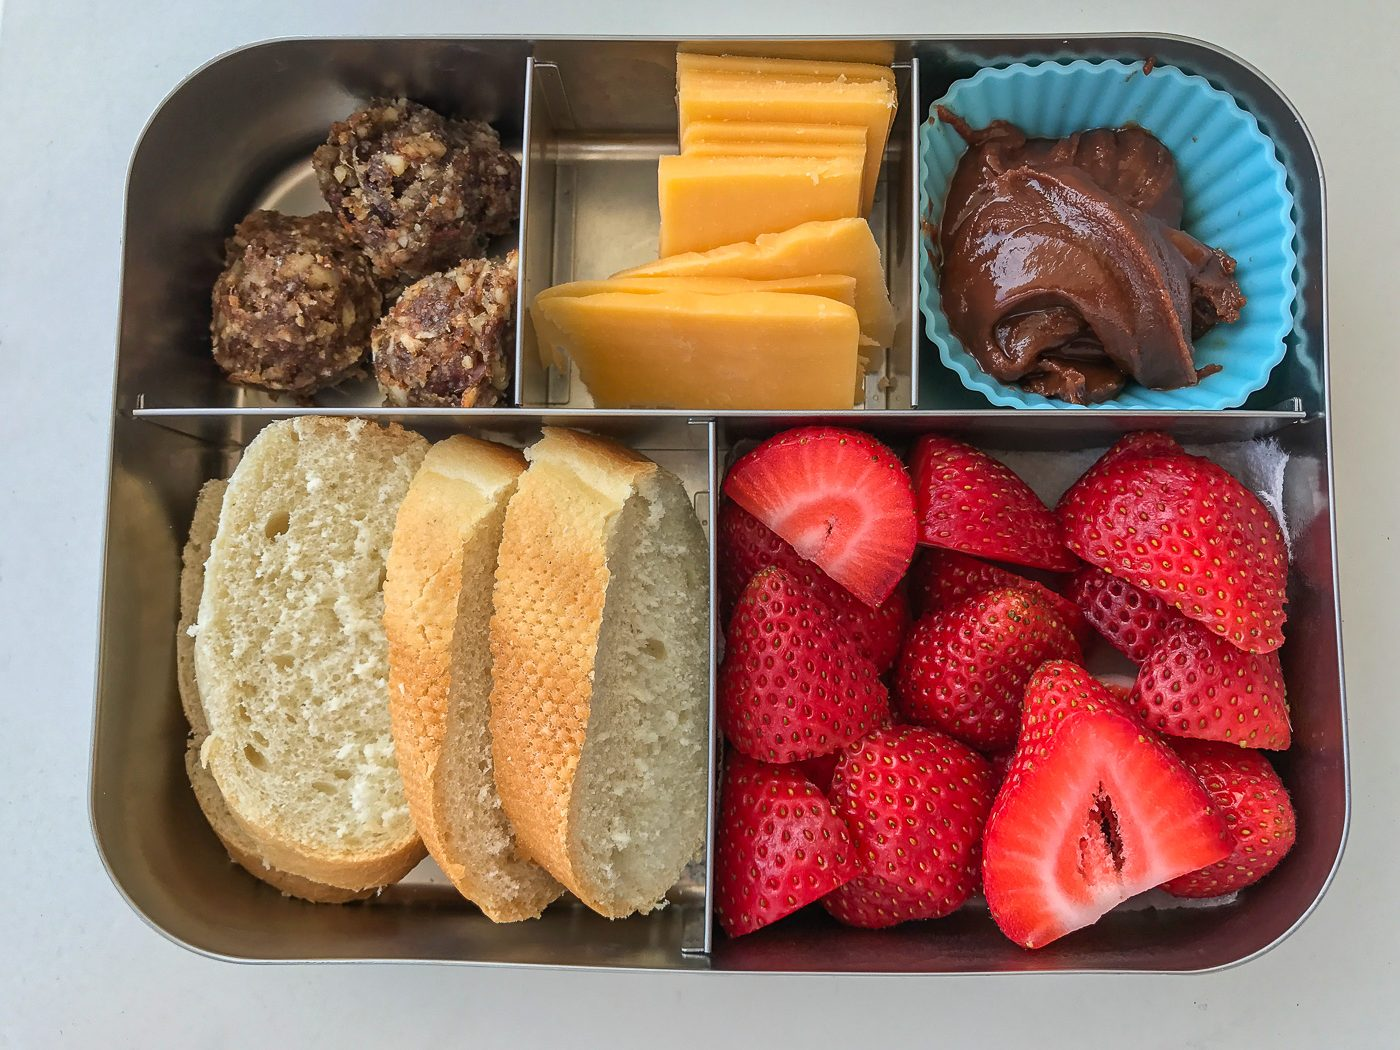 A bento lunch box filled with bread, strawberries, cheese, hazelnut spread and Unwrapp'd dough balls